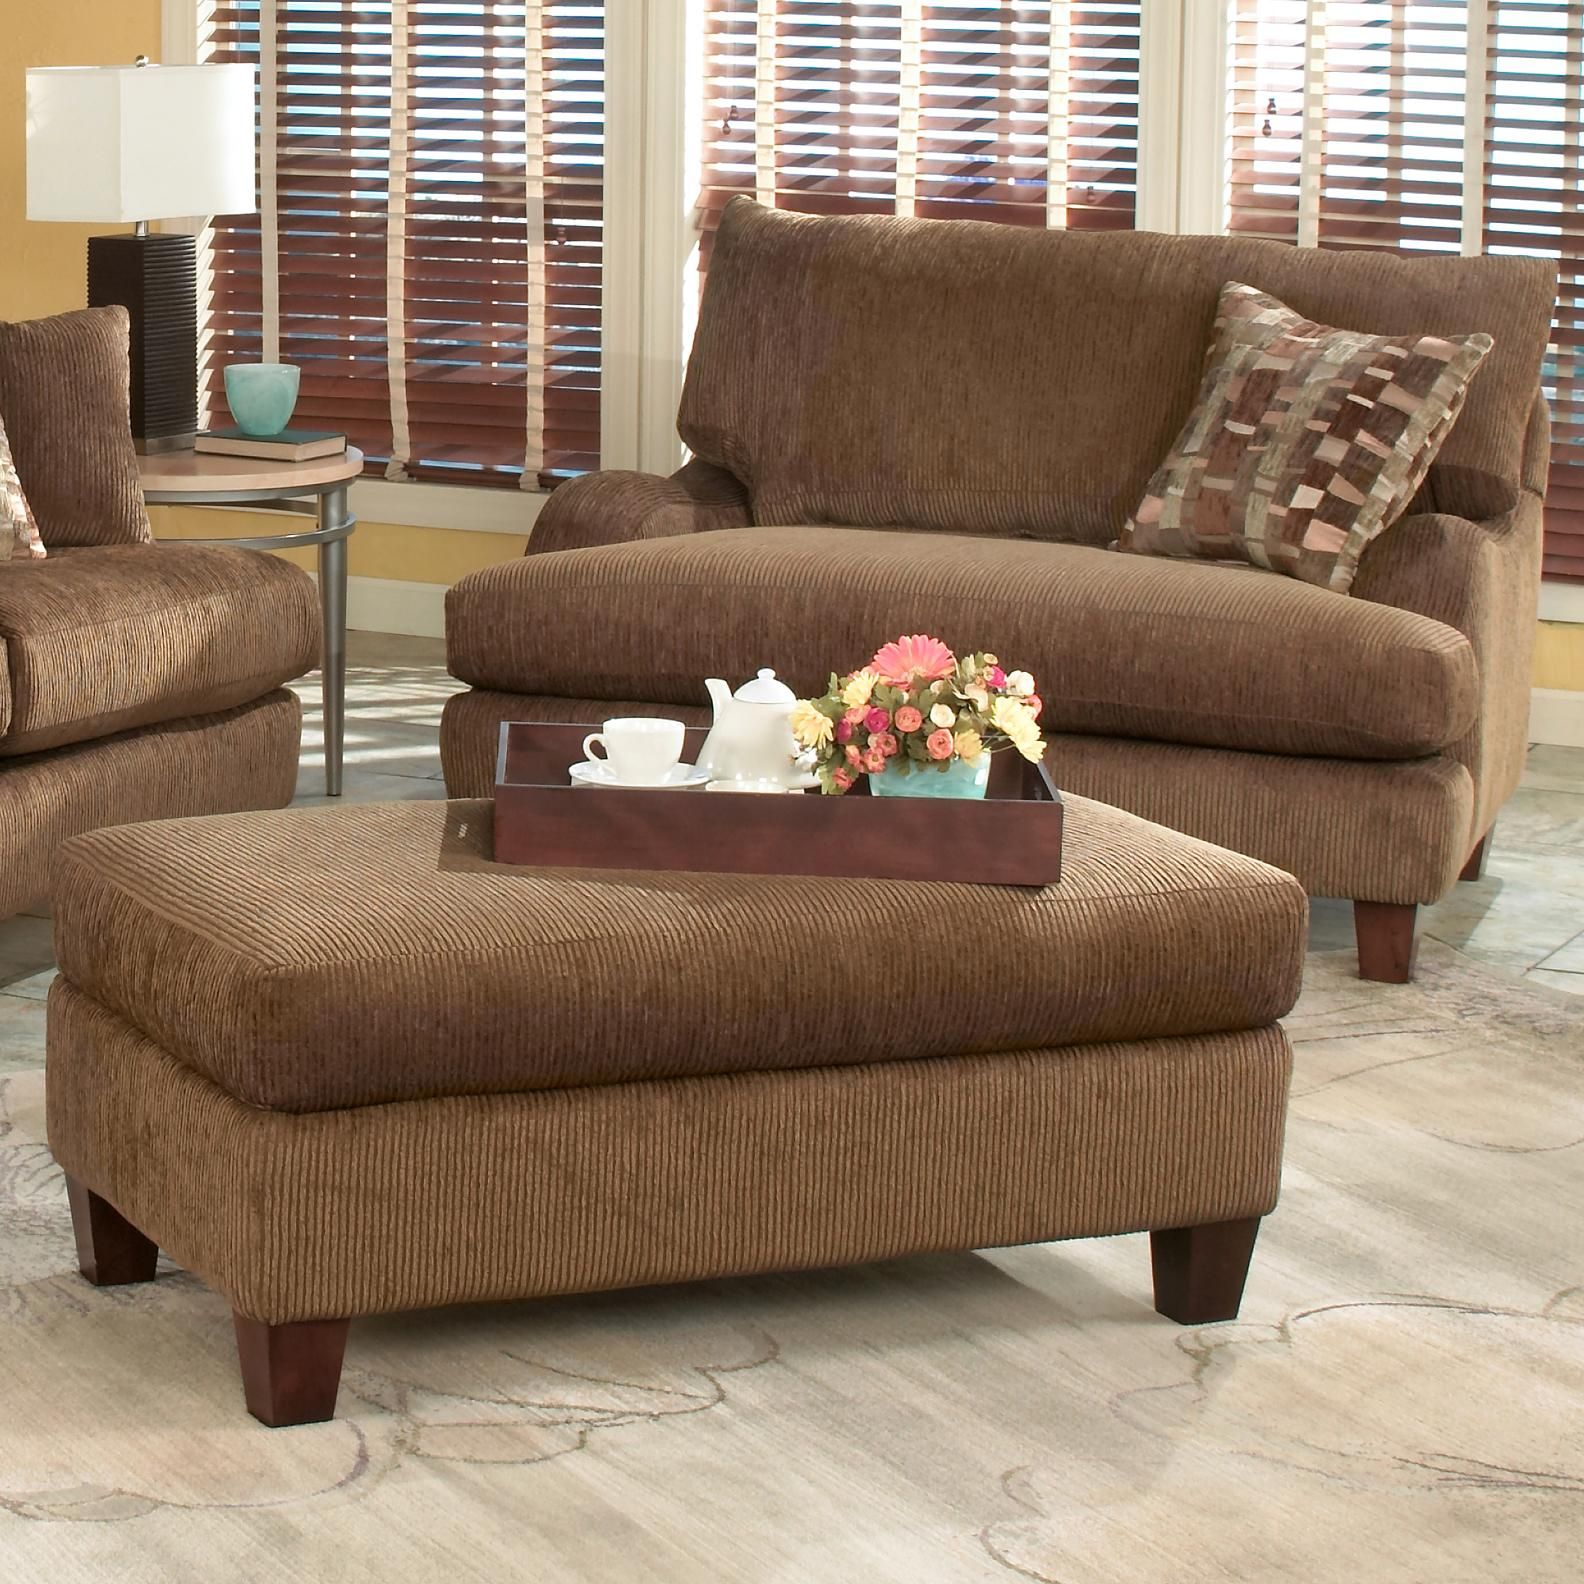 wide chairs living room.  living room power extra wide cuddler recliner 1750 snuggler chair and ottoman set for exceptional comfort by corinthian wolf furniture Extra Wide Living Room Chairs Modern House